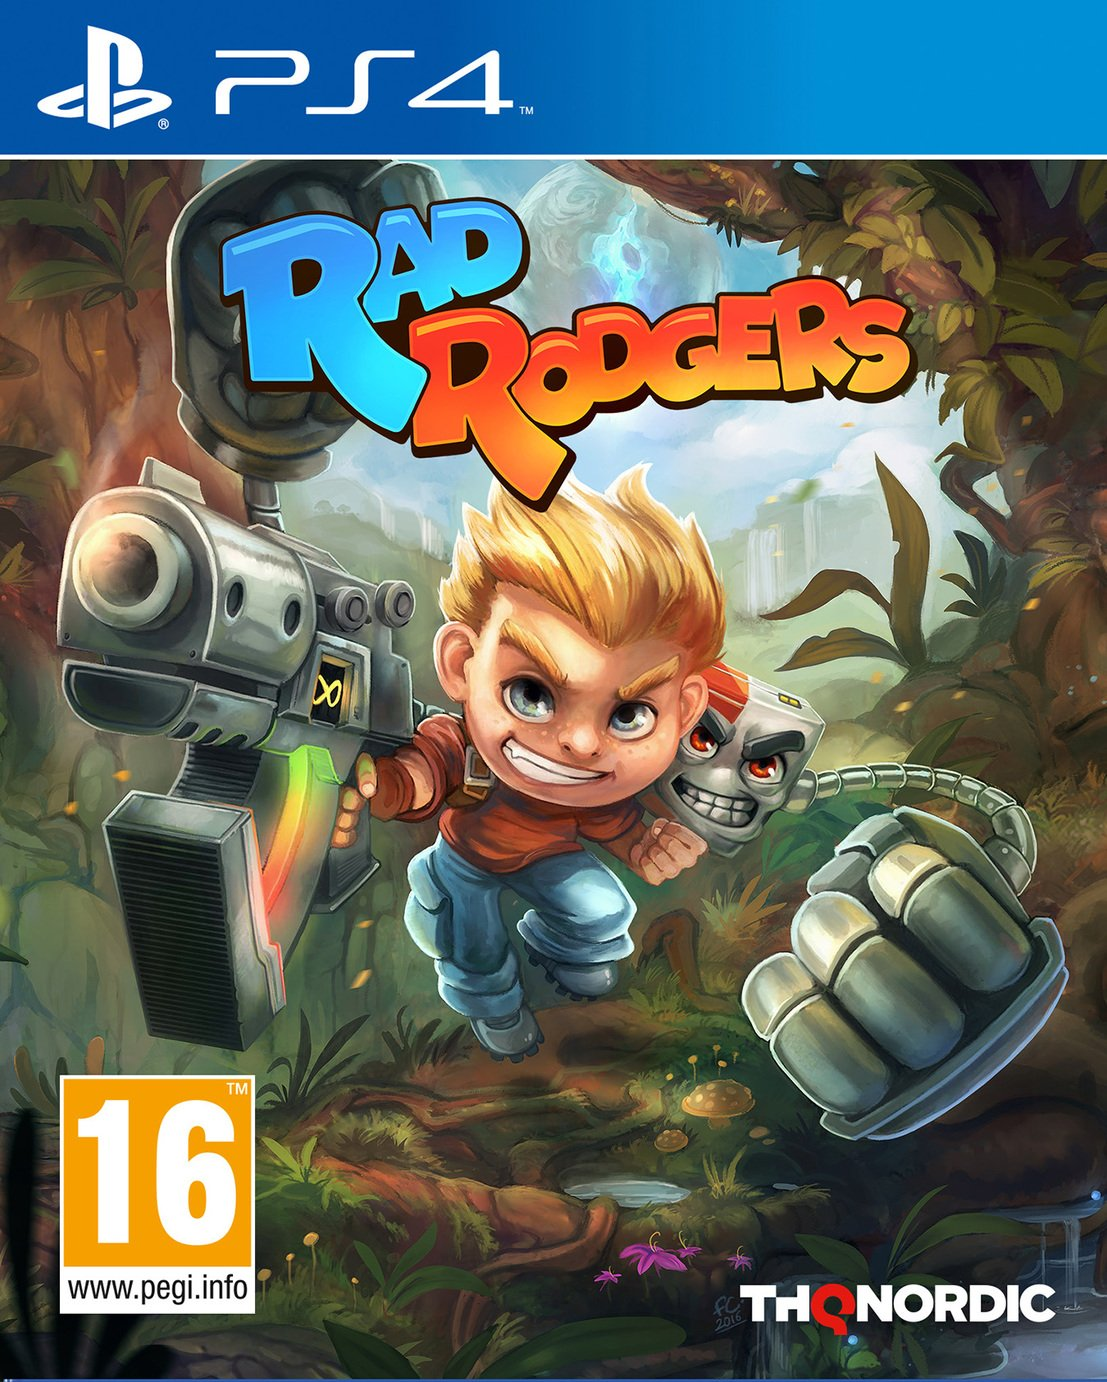 rad-rodgers-ps4-pre-order-game